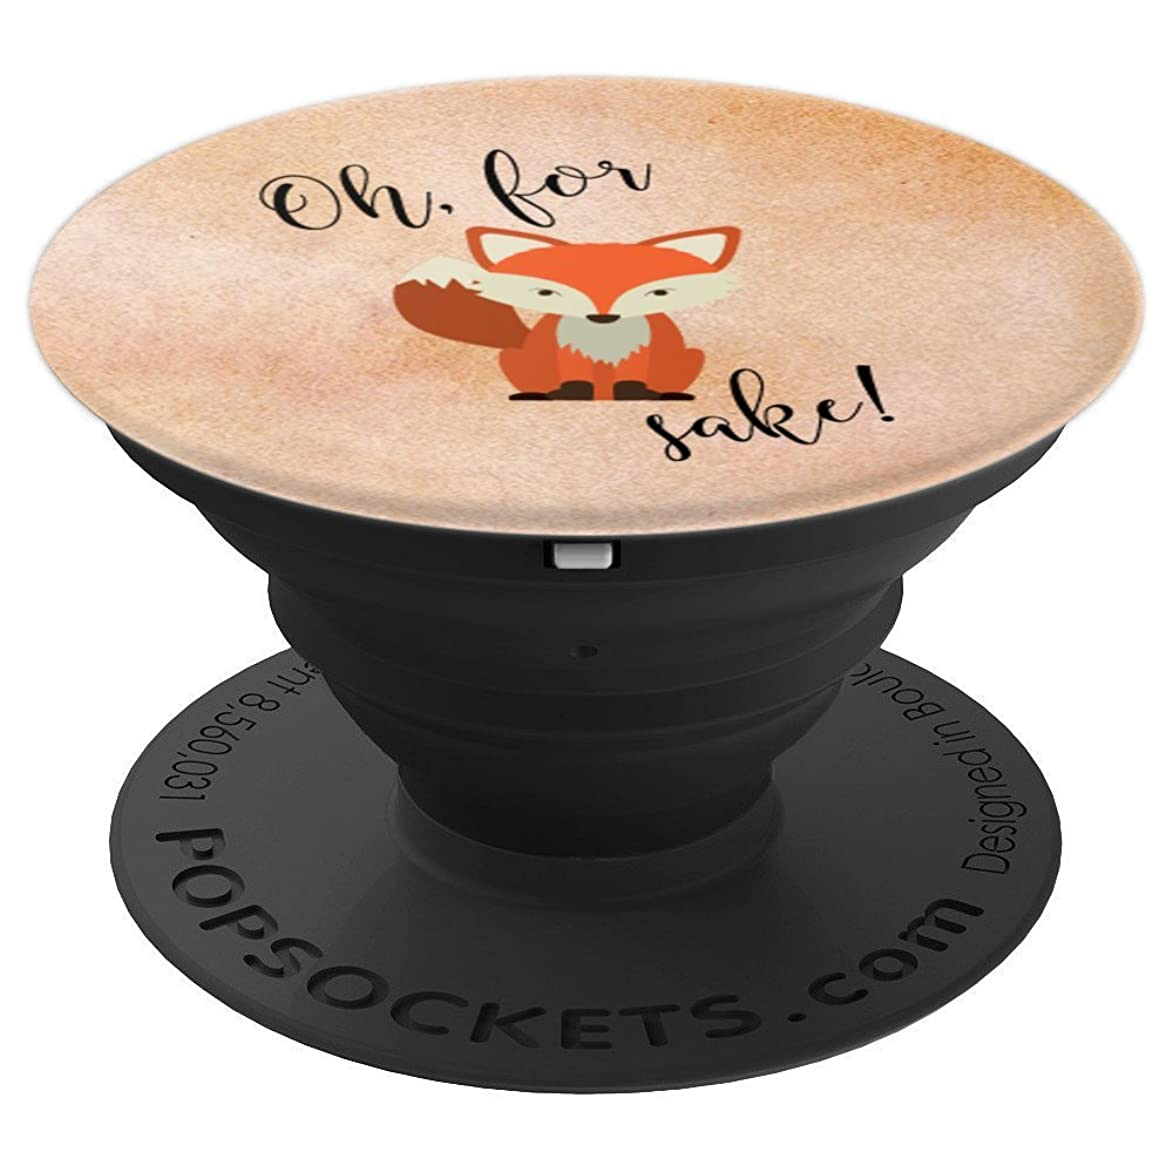 Oh For Fox Sake - PopSockets Grip and Stand for Phones and Tablets qtn324597119559